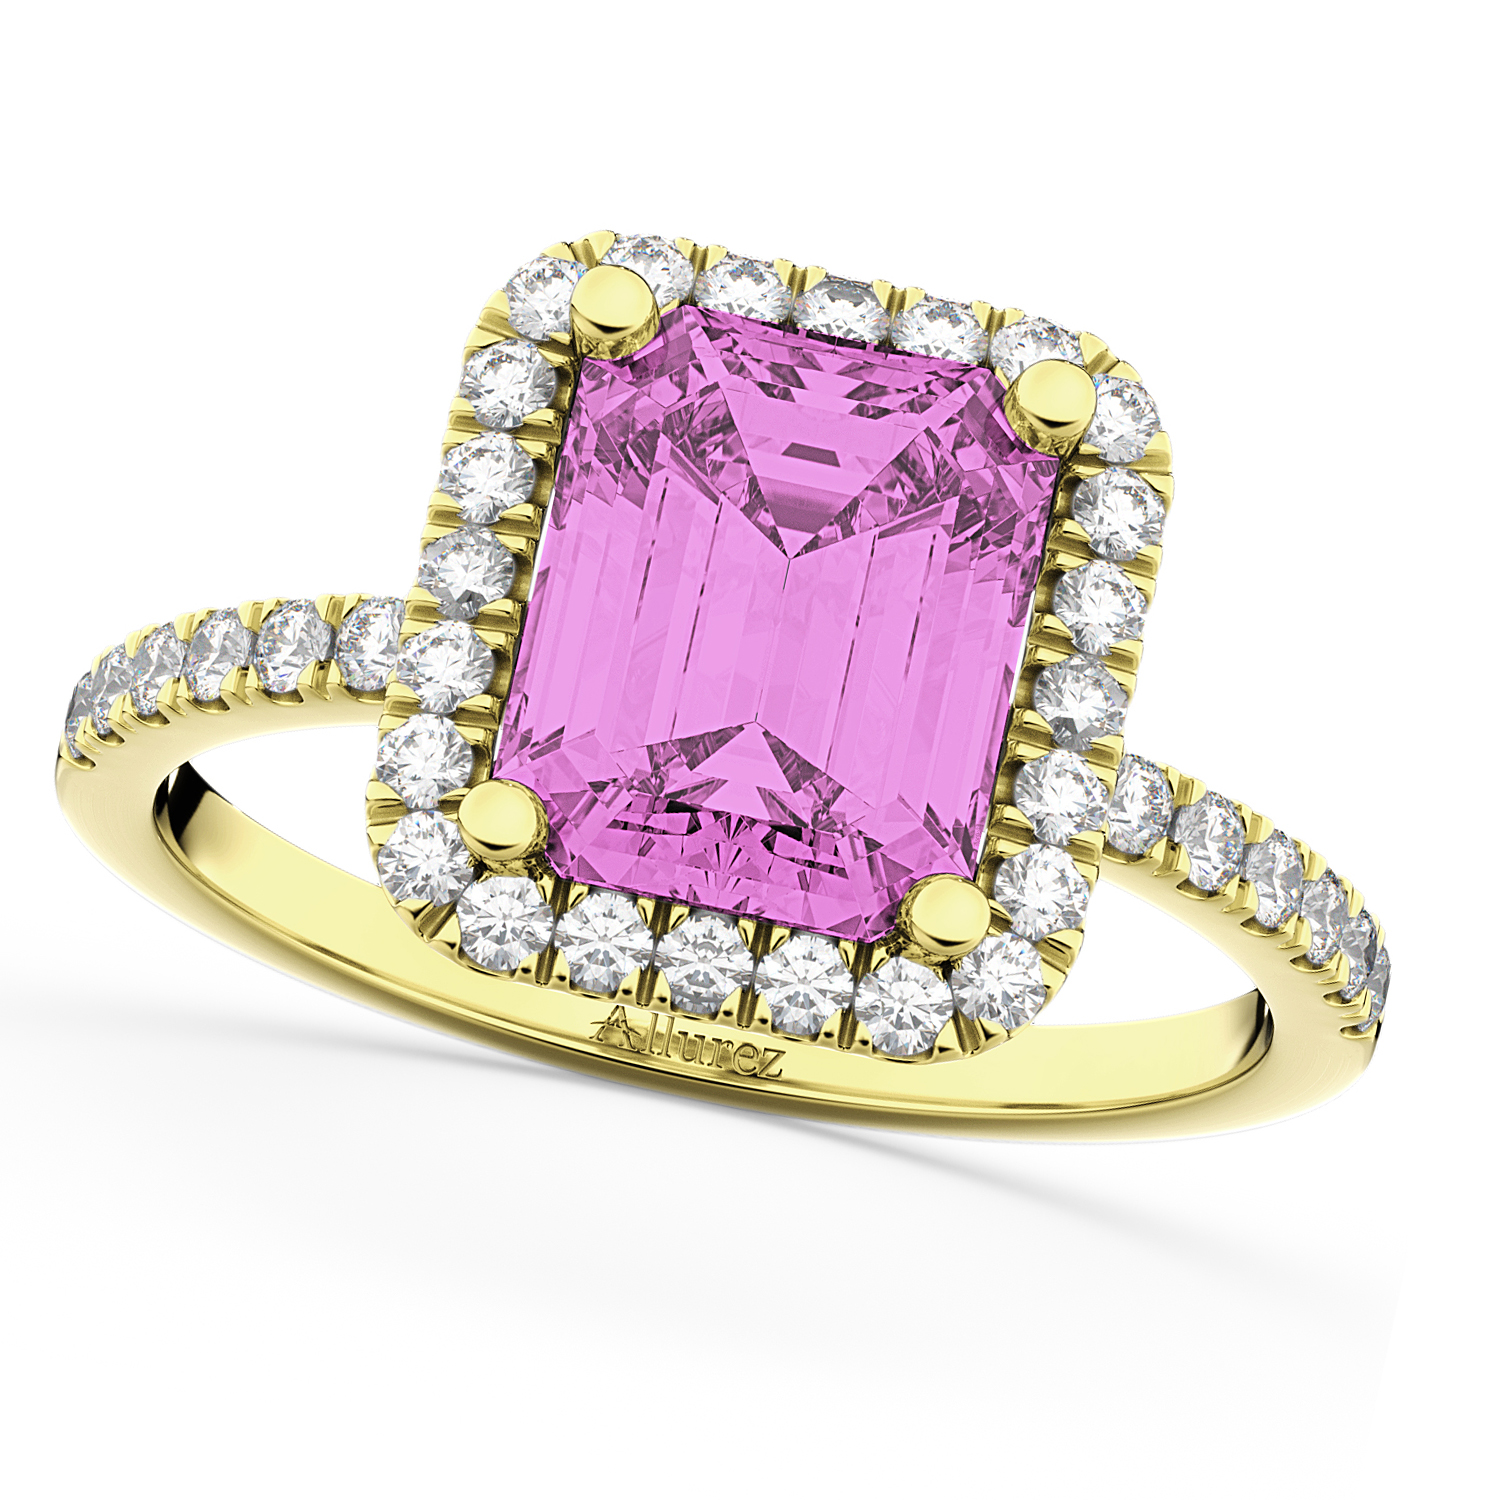 Pink Sapphire Diamond Engagement Ring 18k Yellow Gold 3.32ct - AD1870